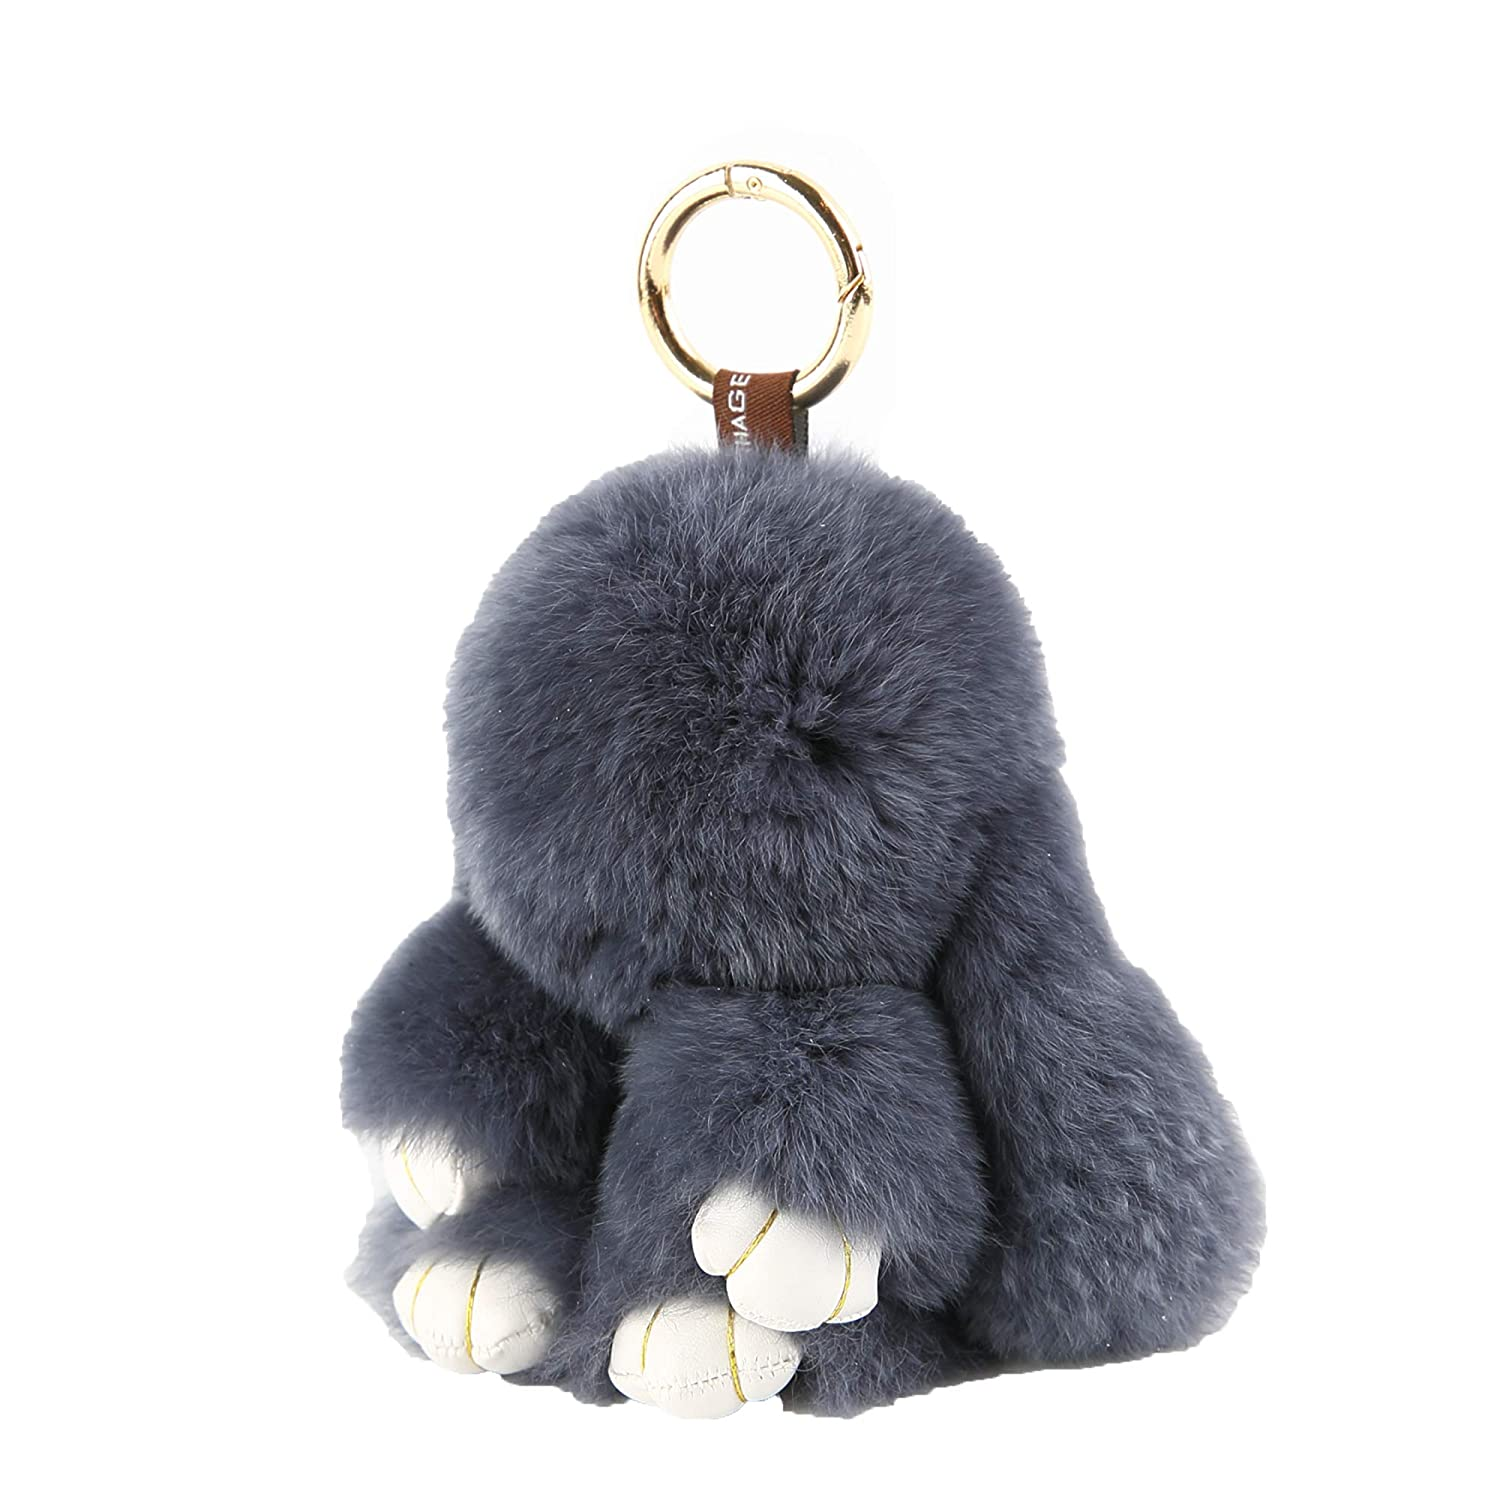 Luggage & Bags Lovely Cute Mini Dolls Pendant Gift For Mobile Phone Straps Bags Part Accessories Decoration Cute Cartoon Movie Plush Toy